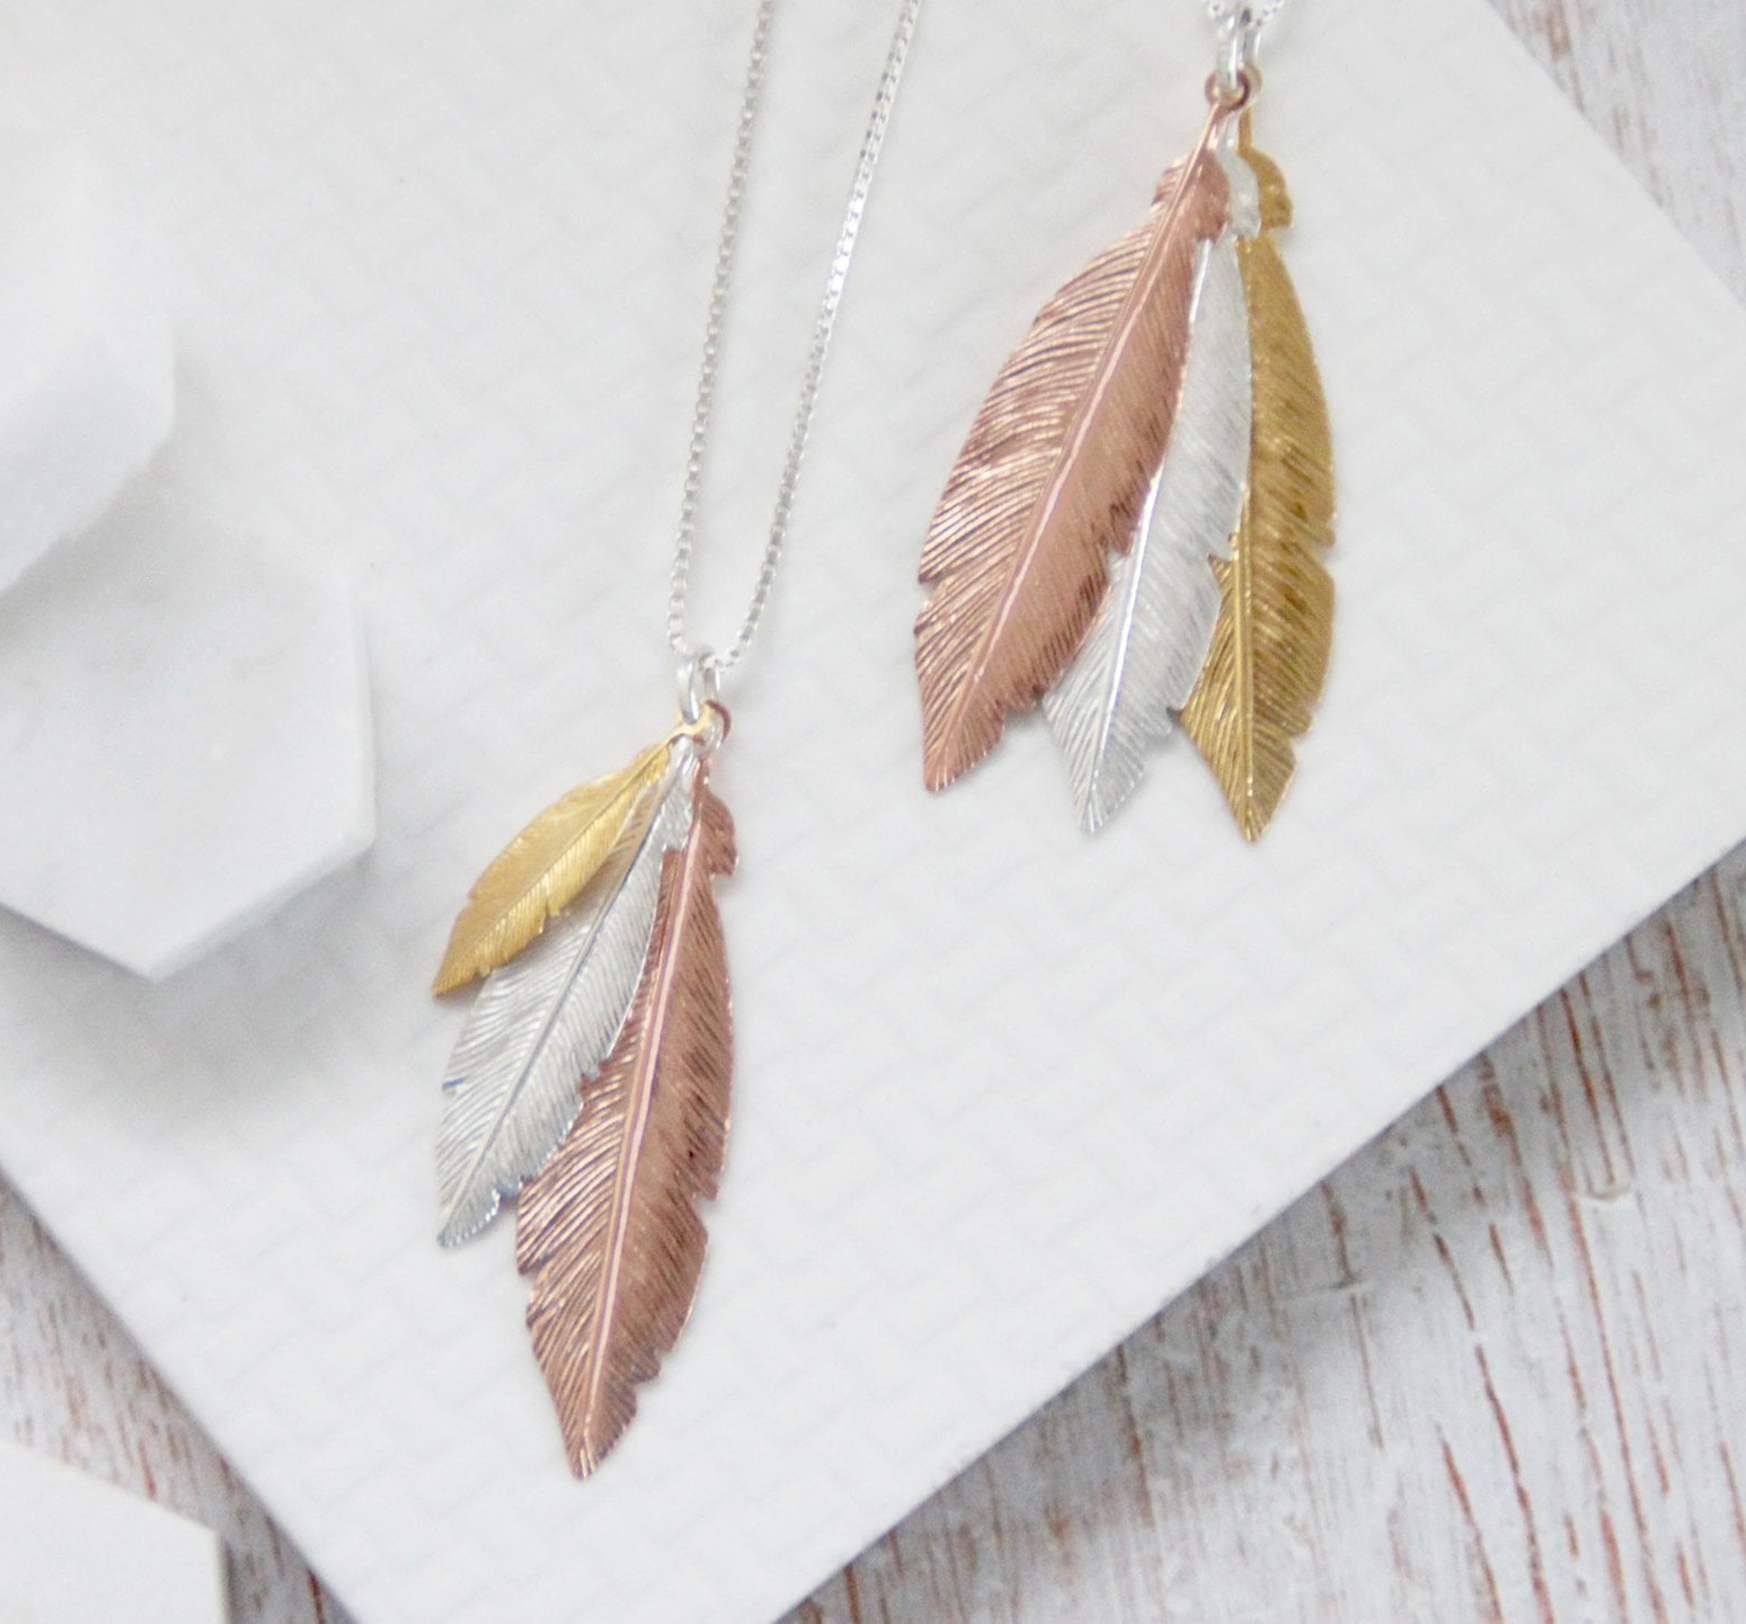 Create Your Own 'When Feathers Appear' Sterling Silver Necklace